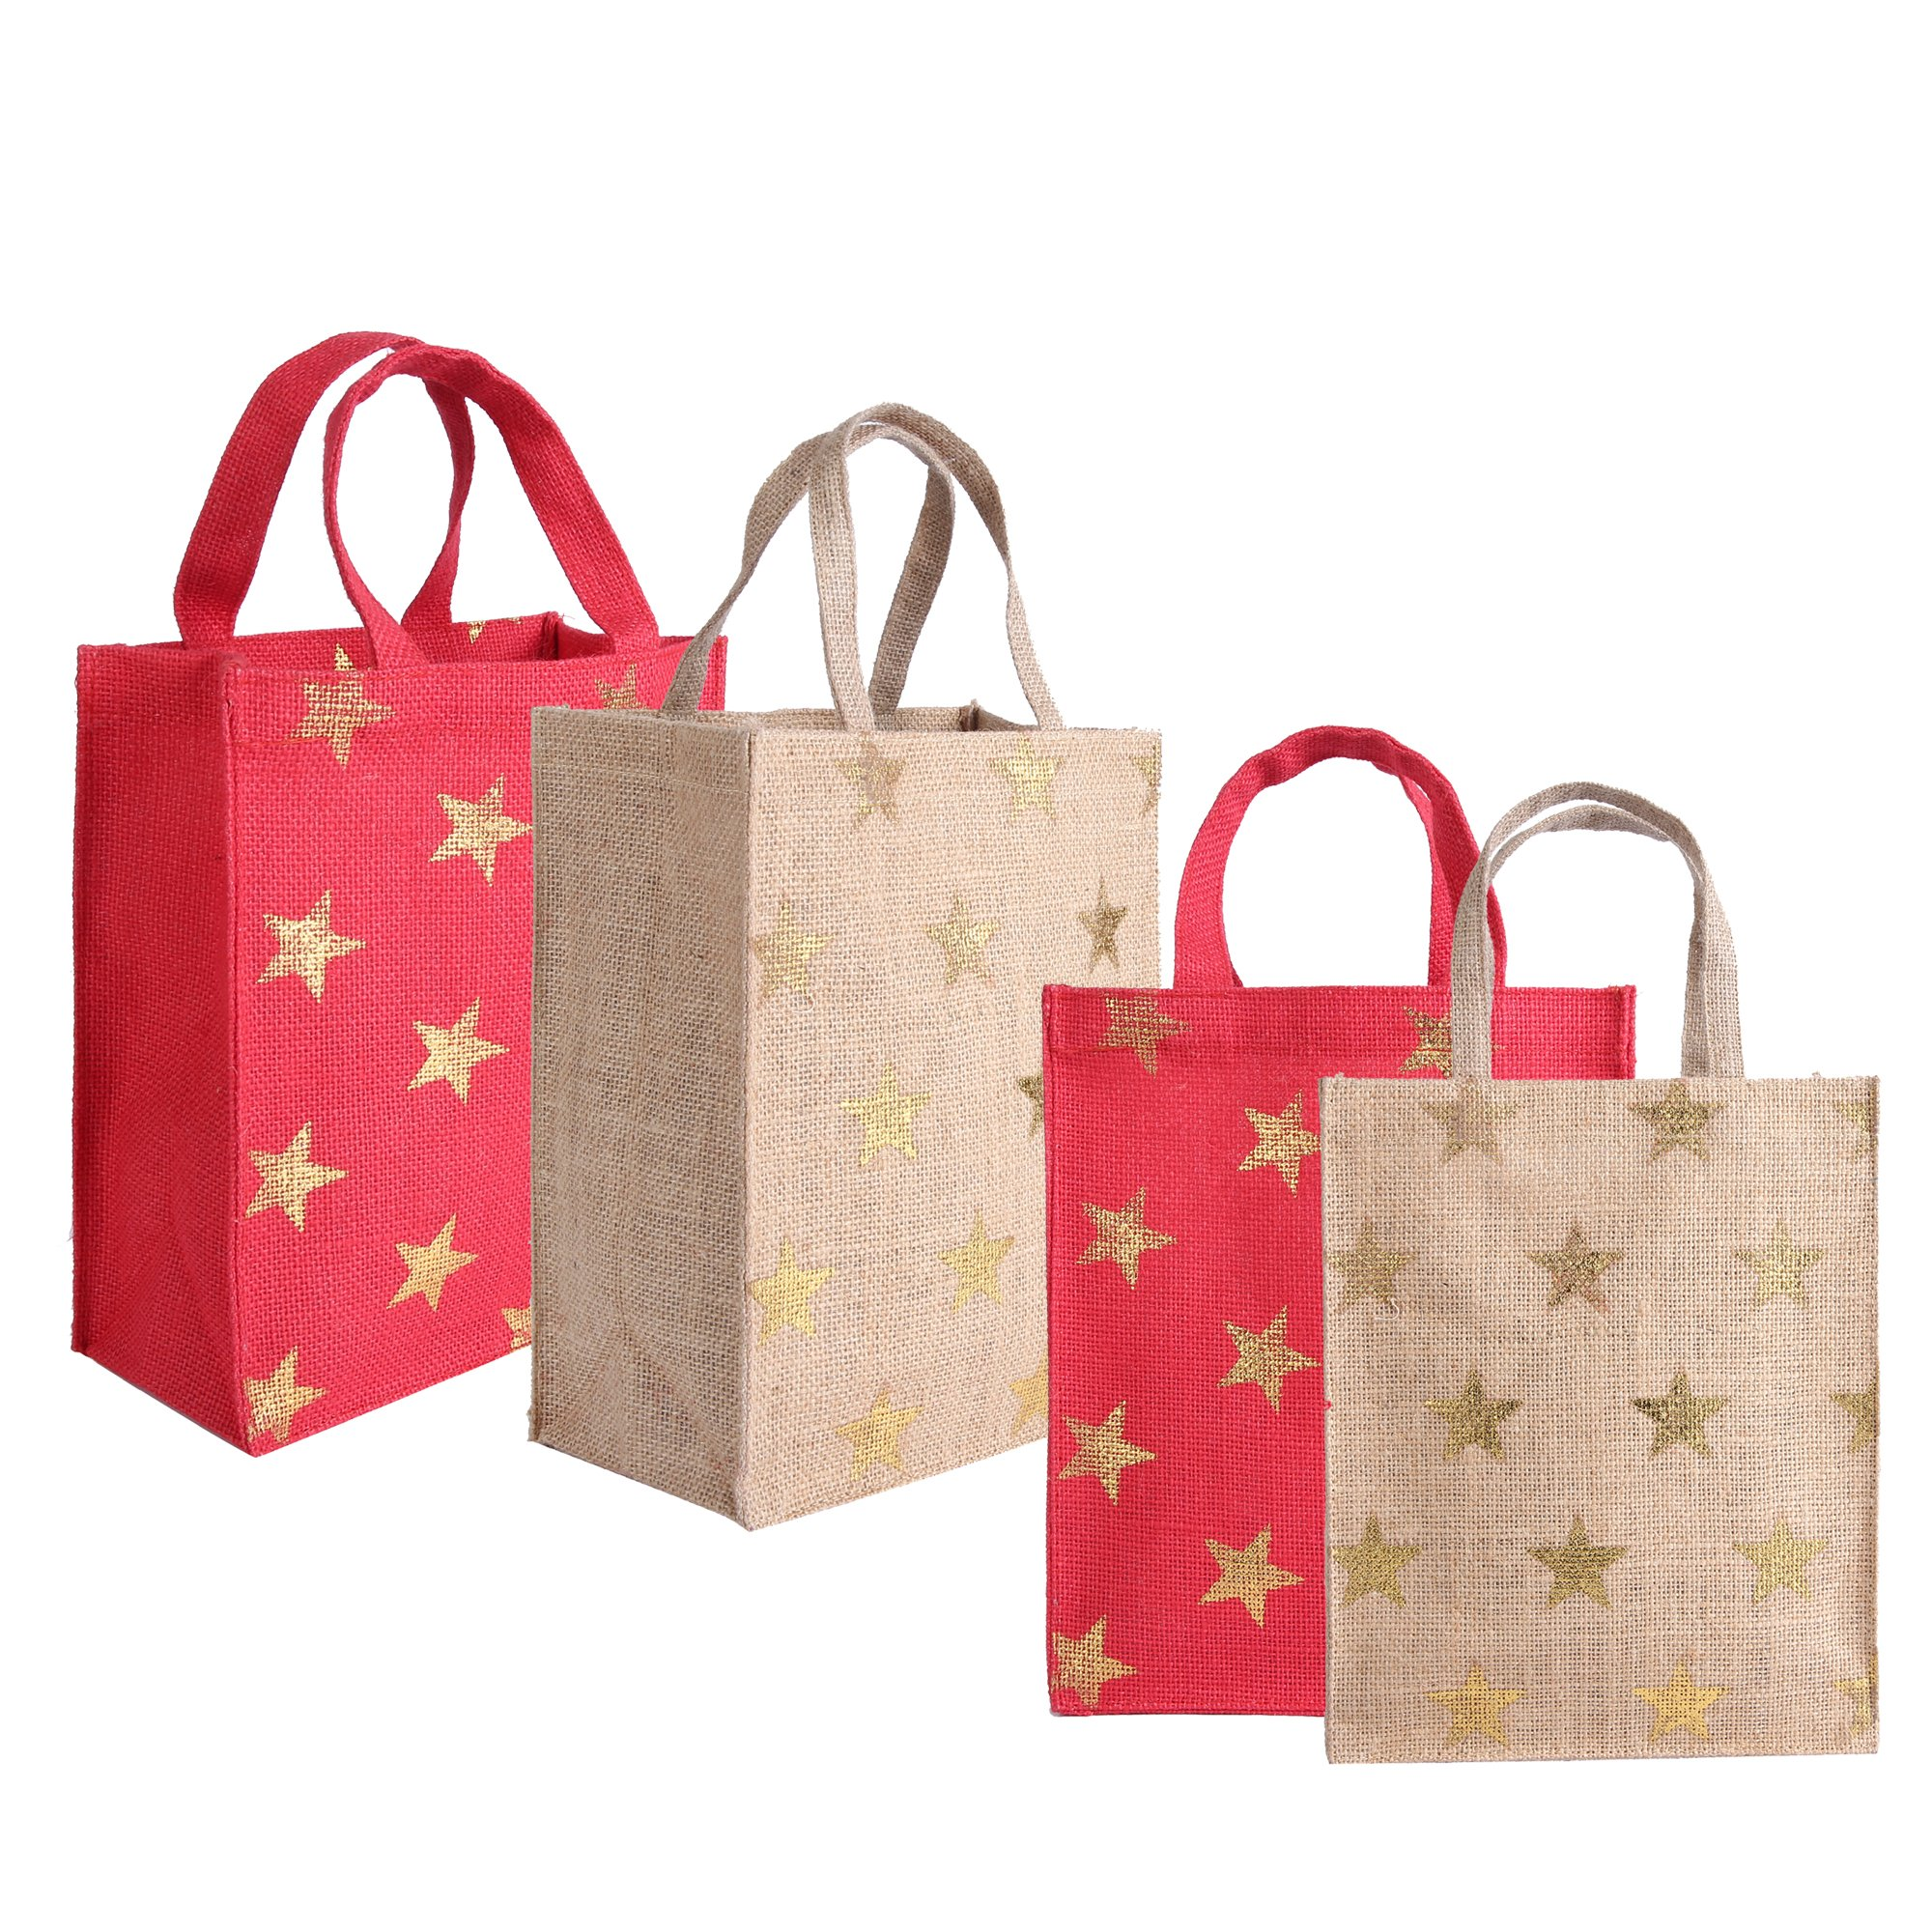 Jute Gift Bags with Gold Foil Print, Reusable and Ecofriendly from Earthbags (Pack of 4)